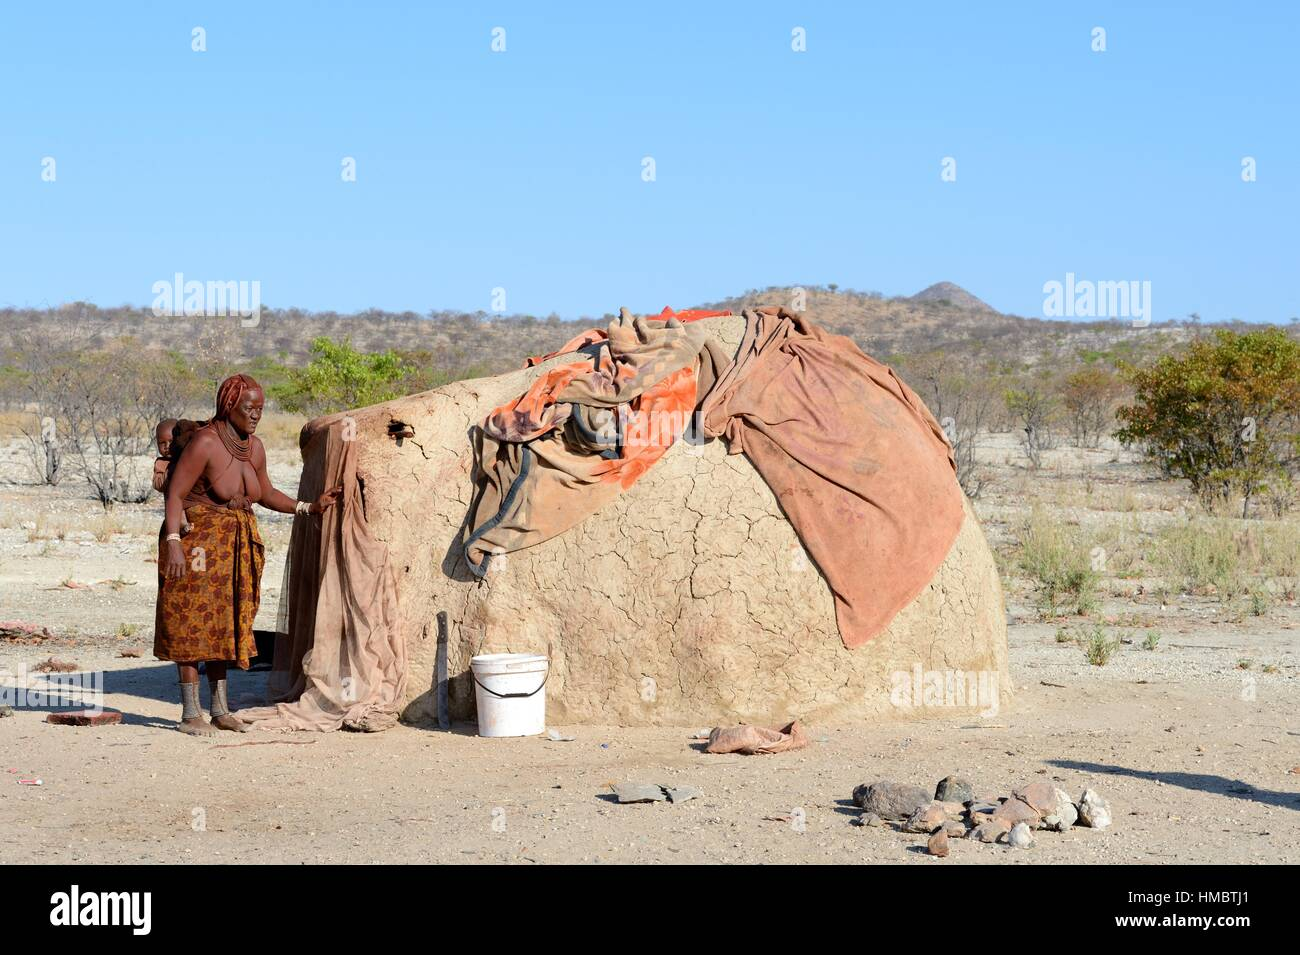 Femme Himba traditionnel à côté de cabane de torchis. Kaokoland, la Namibie. Photo Stock